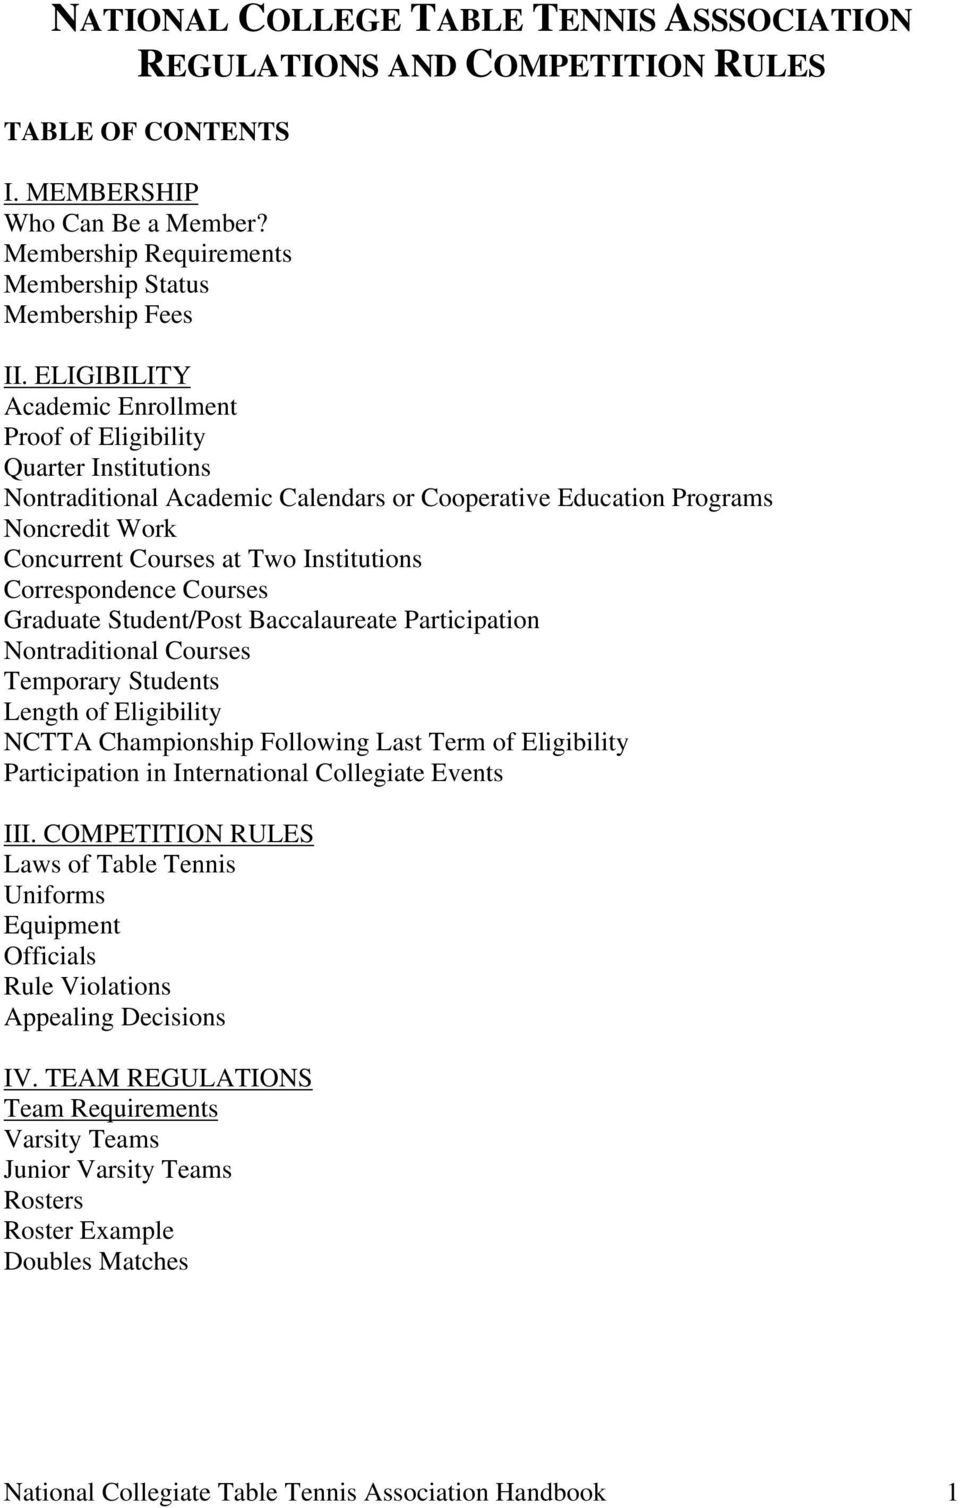 Correspondence Courses Graduate Student/Post Baccalaureate Participation Nontraditional Courses Temporary Students Length of Eligibility NCTTA Championship Following Last Term of Eligibility